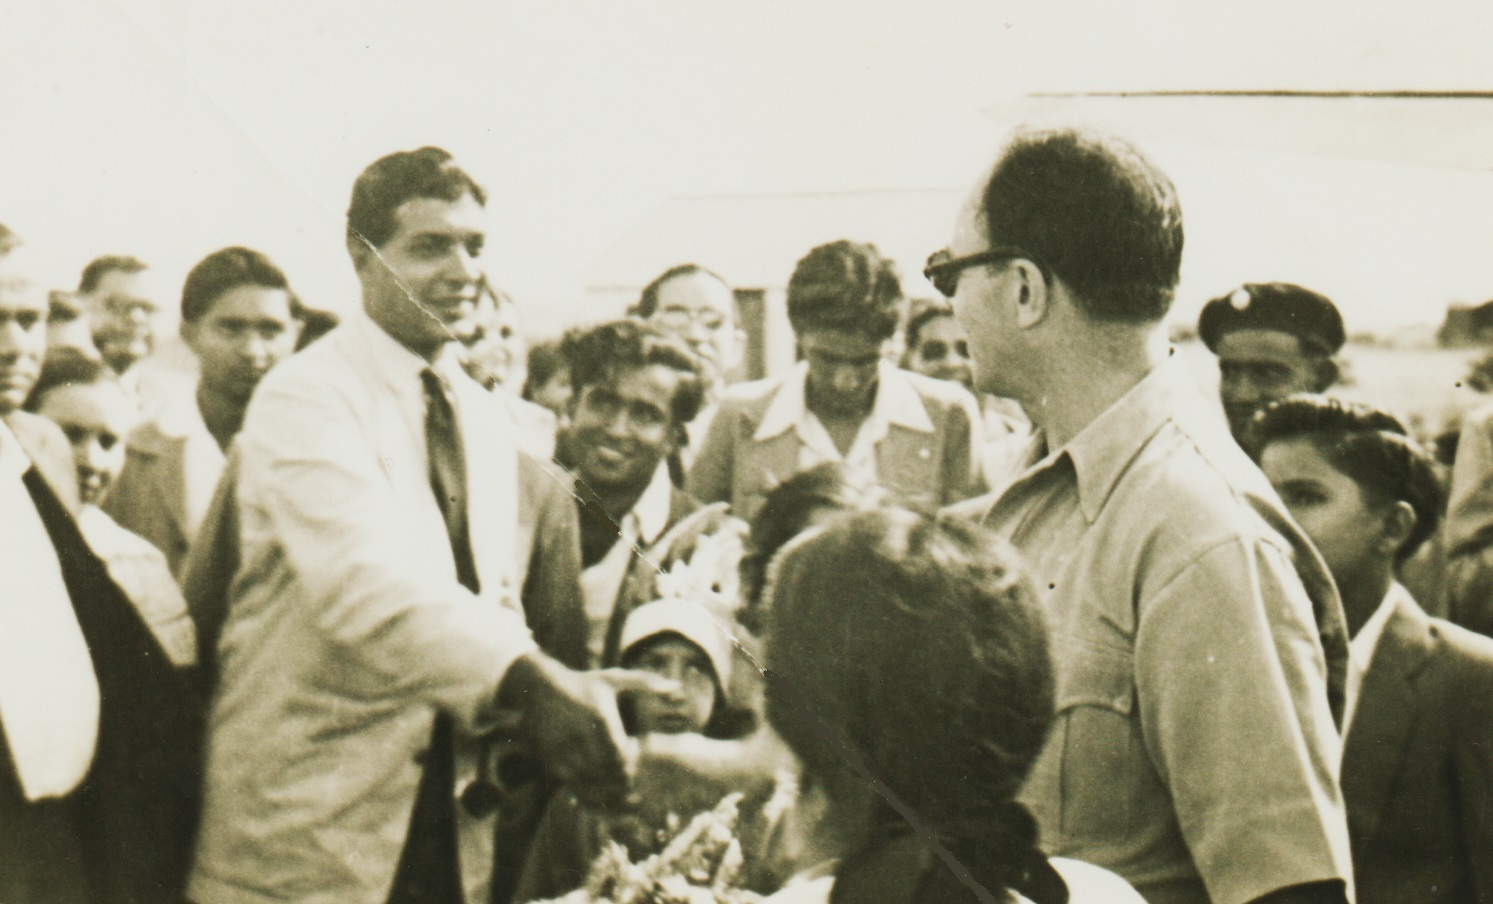 Prince Aly Khan and Rita Hayworth visit Arusha, Tanganyika, now Tanzania, in 1951